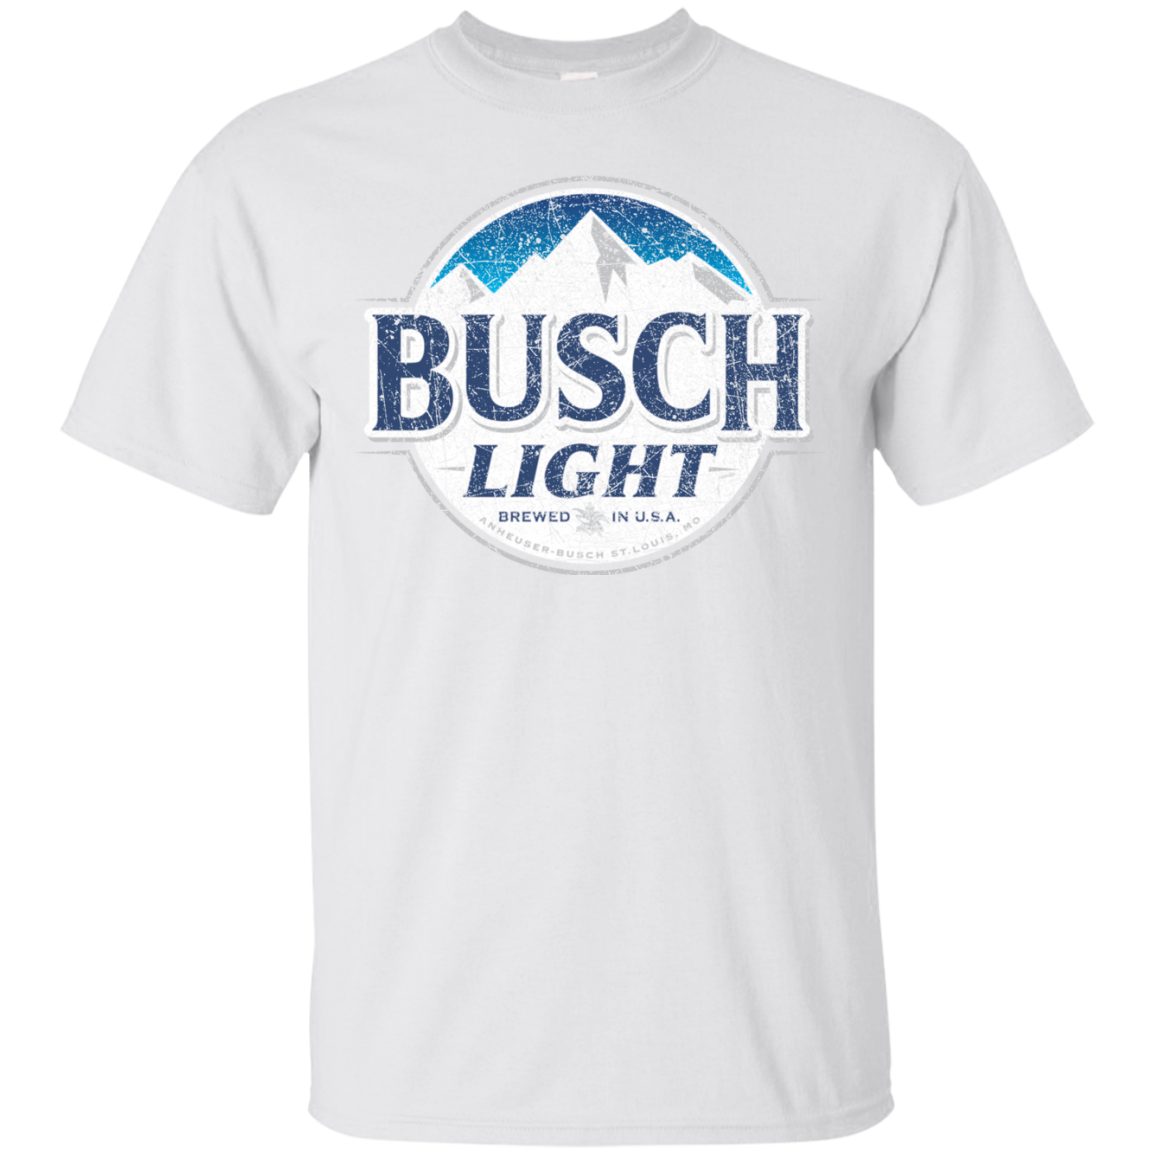 Busch Light Beer T Shirt Custom Designed Color Worn Label Pattern